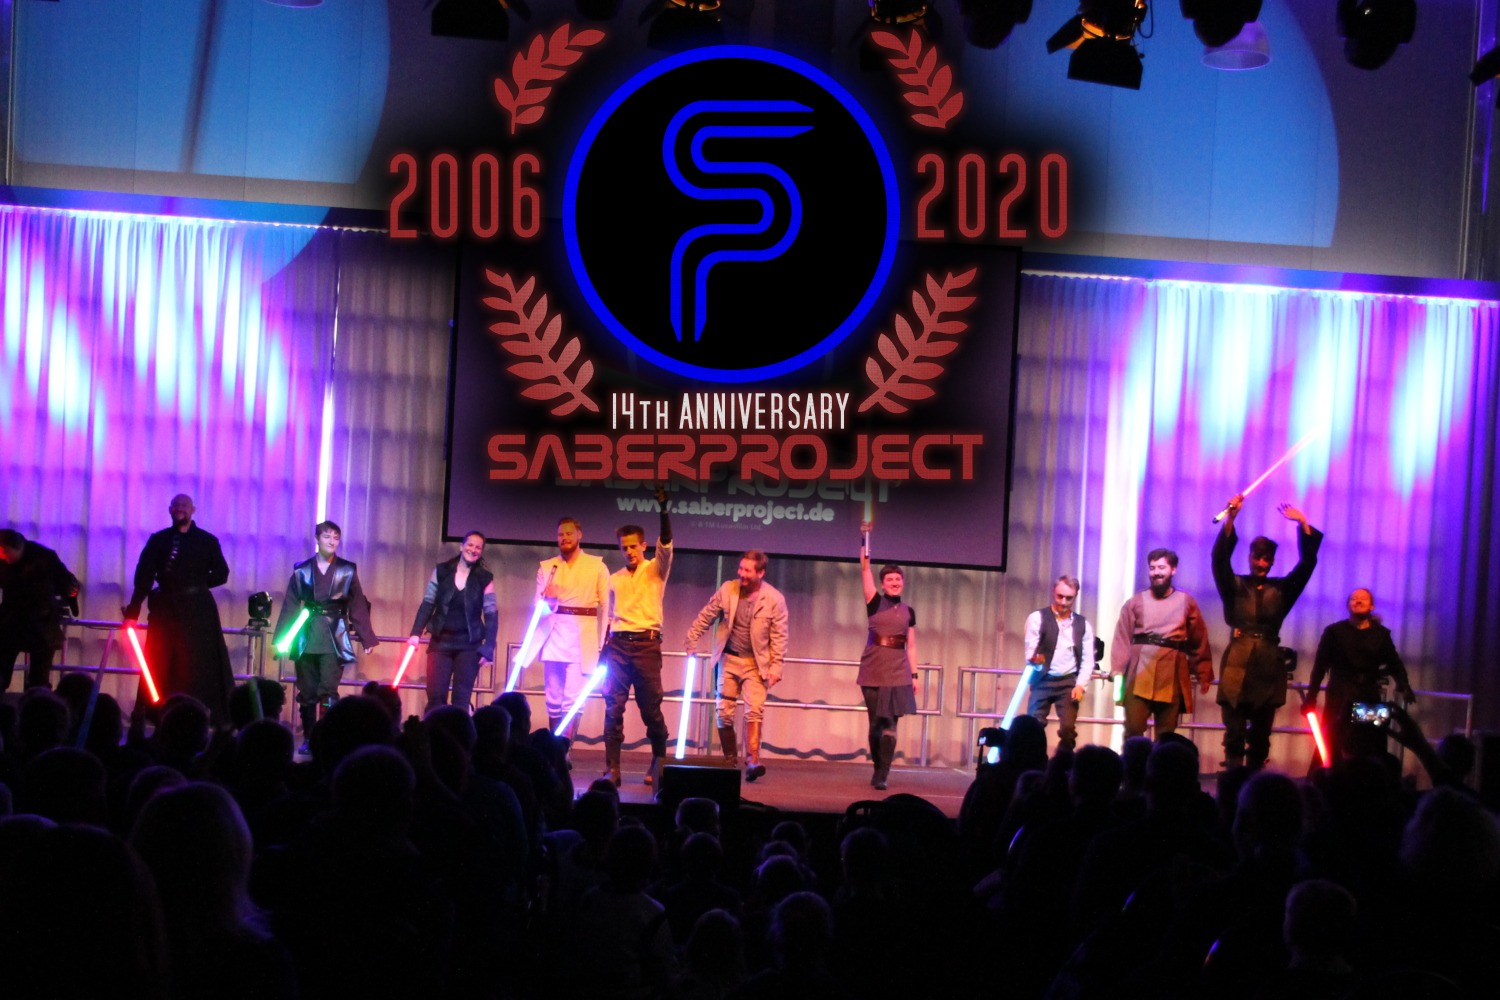 14th Anniversary Saberproject